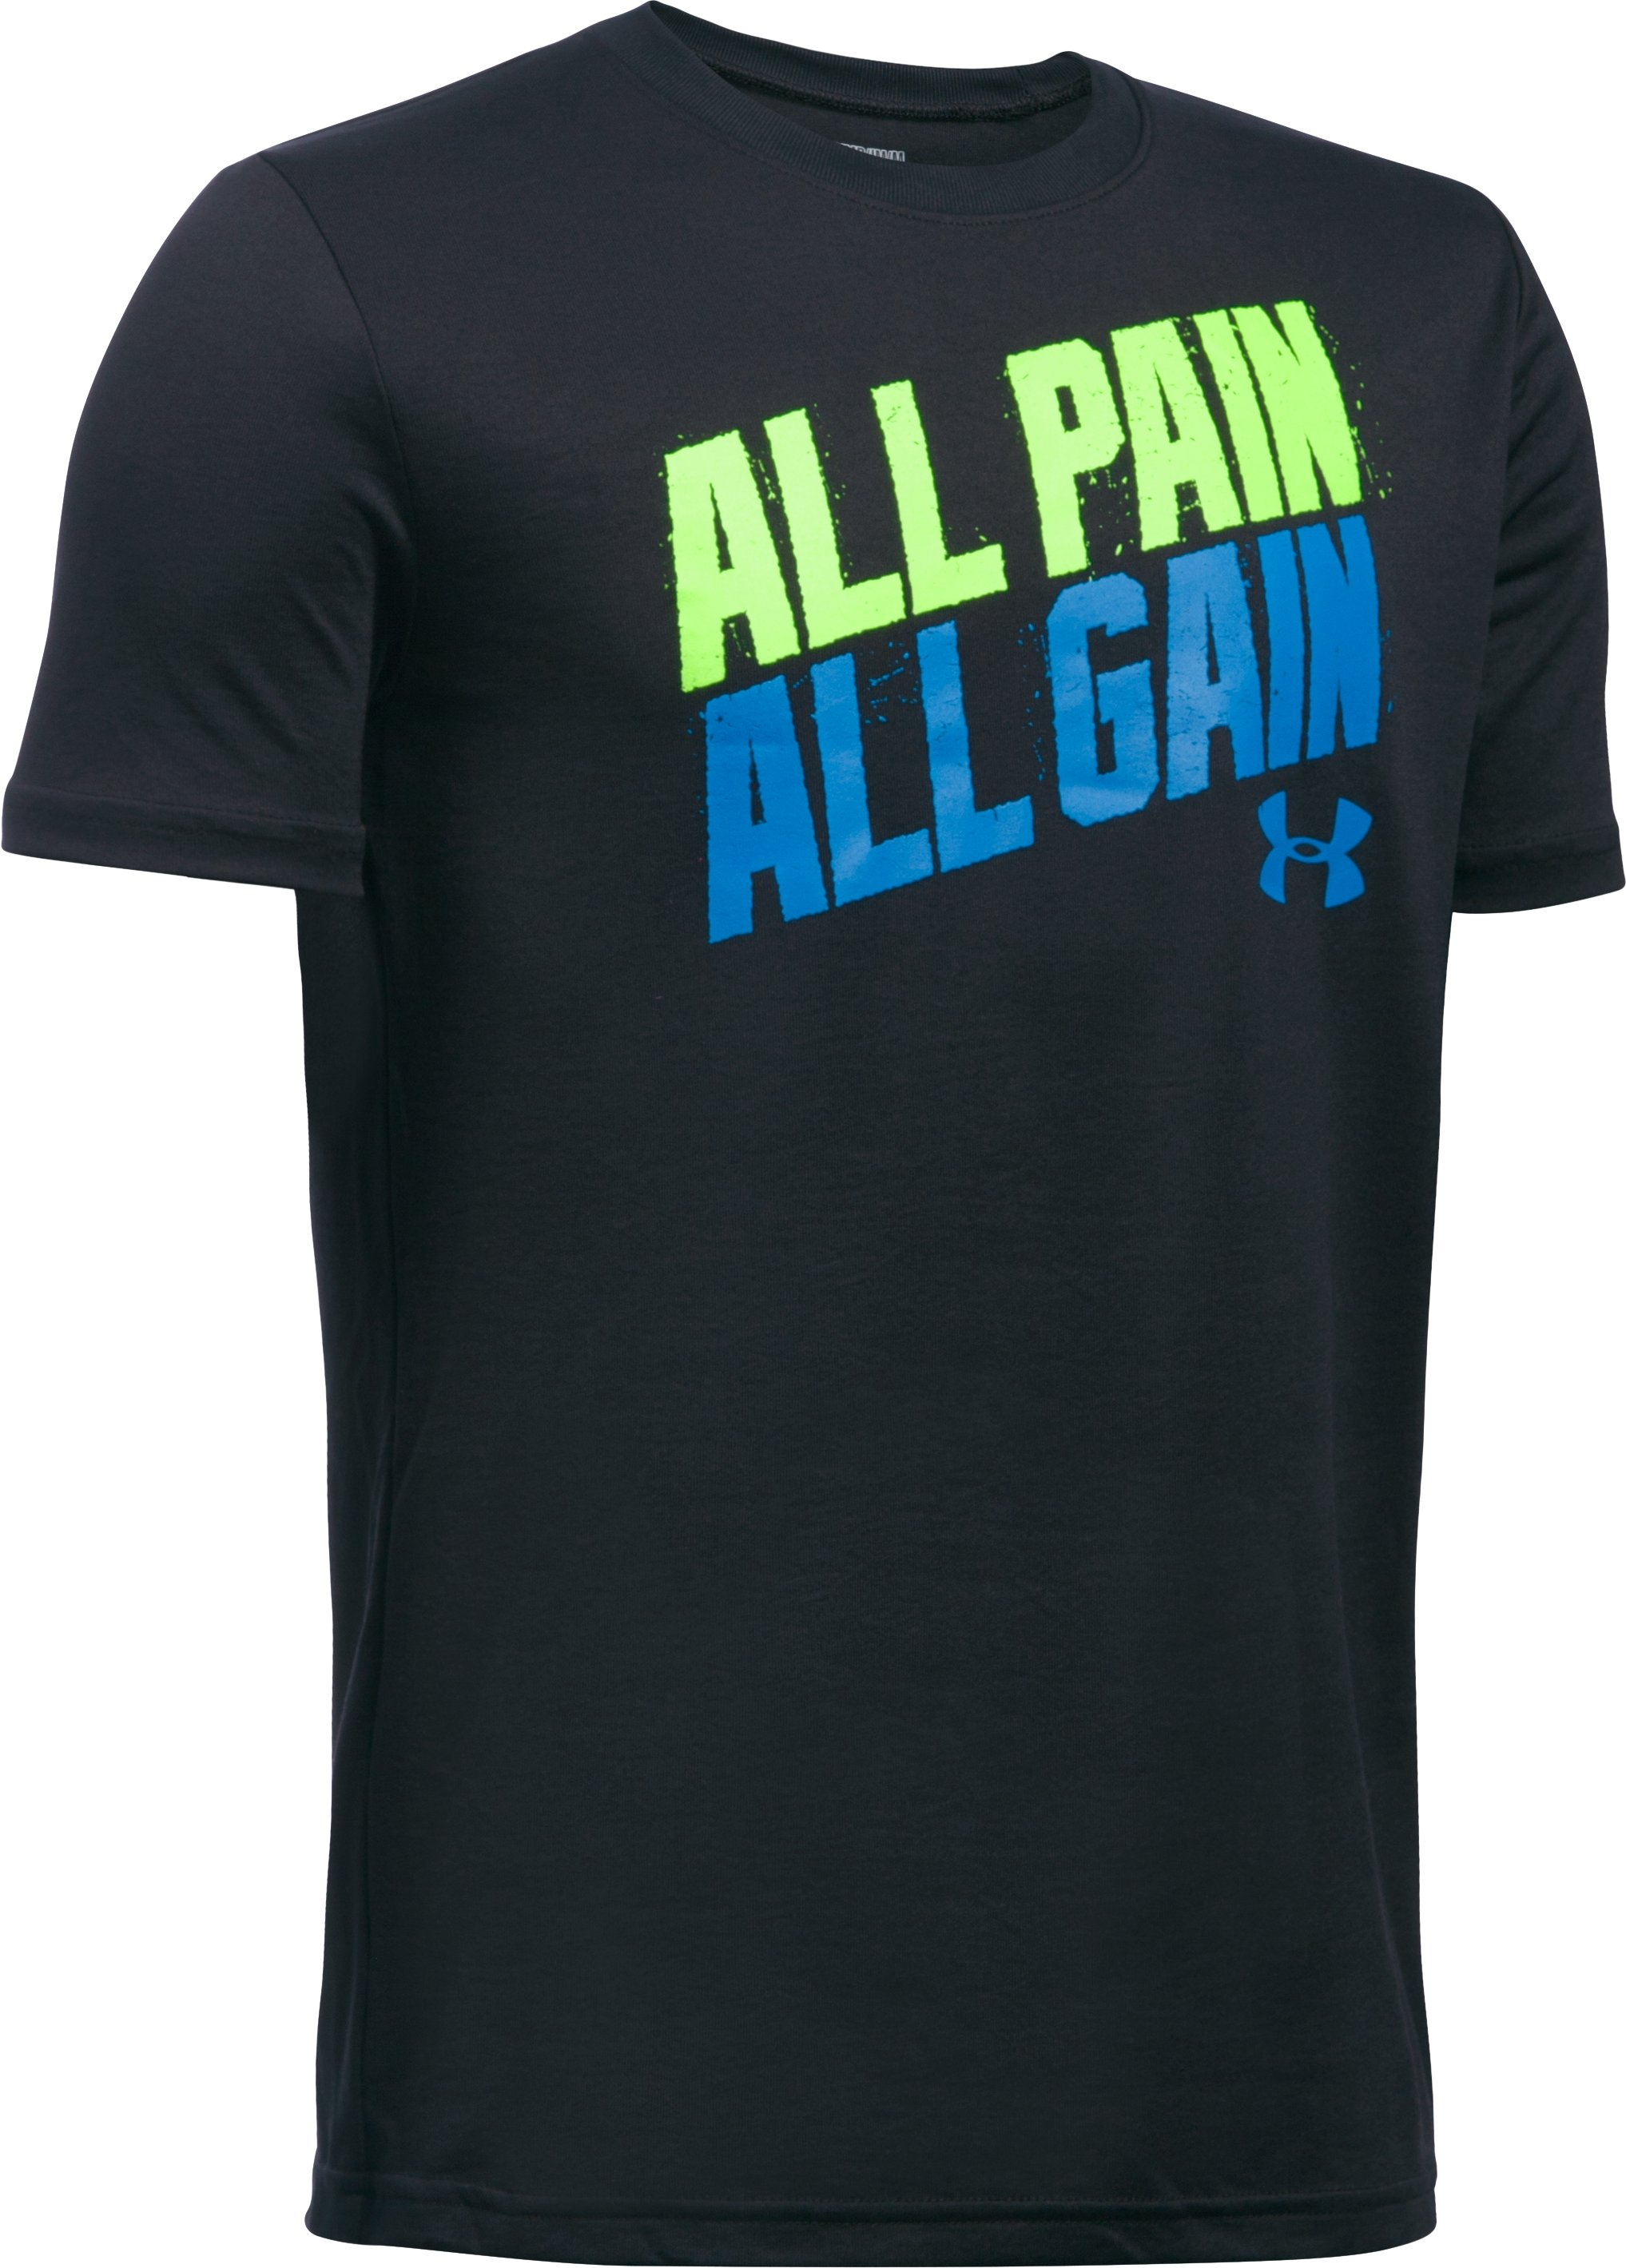 Boys' UA All Pain All Gain T-Shirt, Black , zoomed image